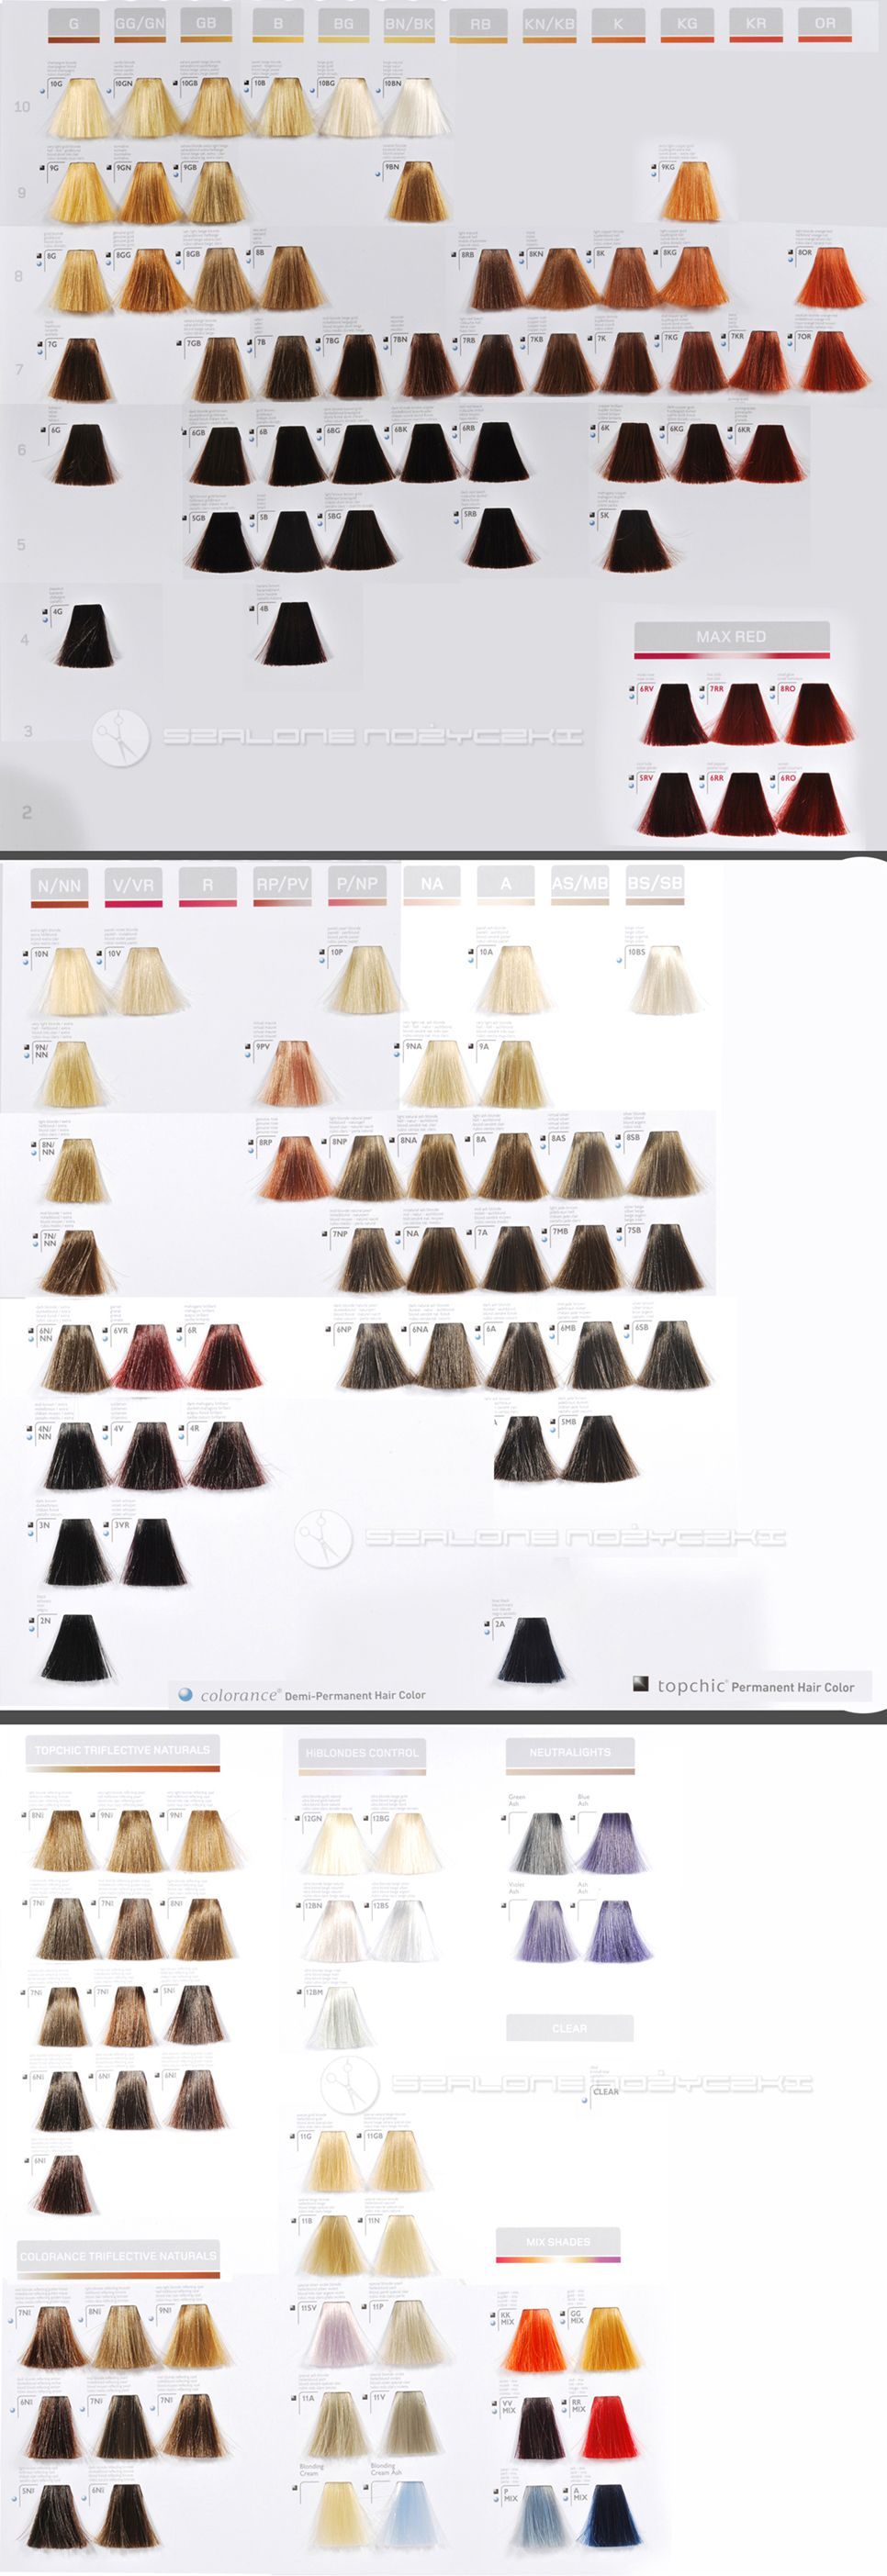 Redken color fusion color chart color charts pinterest redken color fusion color chart color charts pinterest colour chart chart and hair coloring geenschuldenfo Choice Image